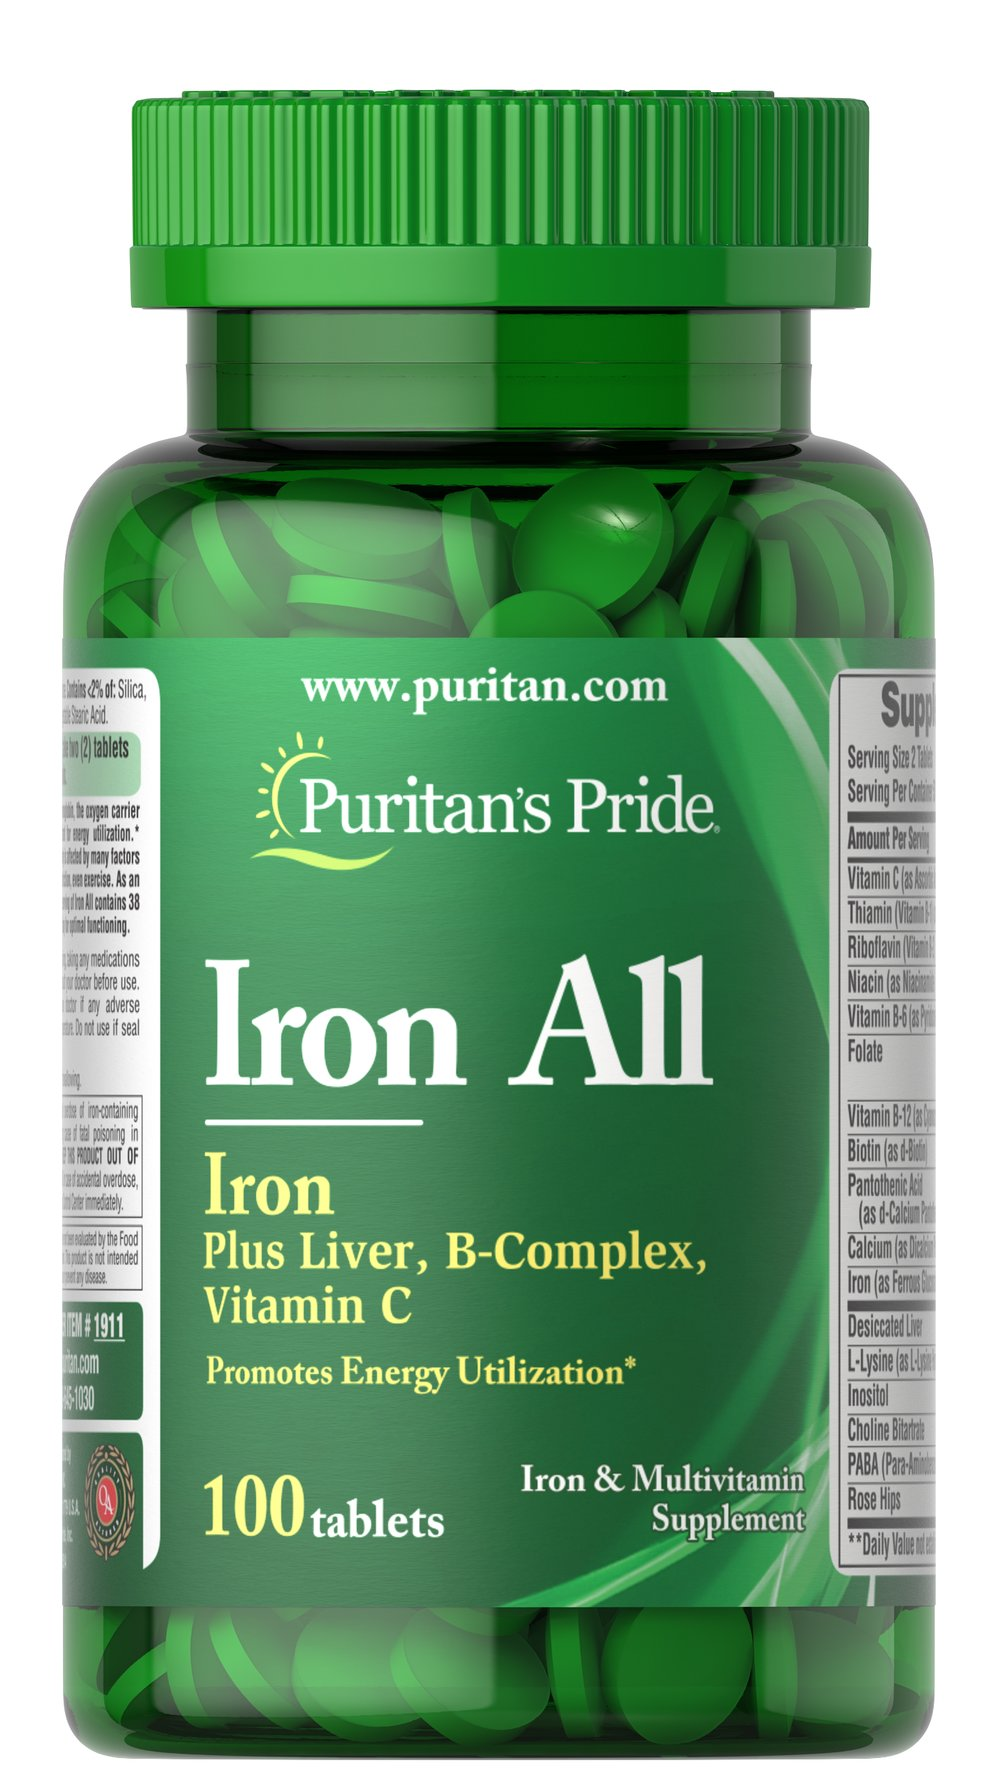 Iron avoid supplement combinations of green tea and iron